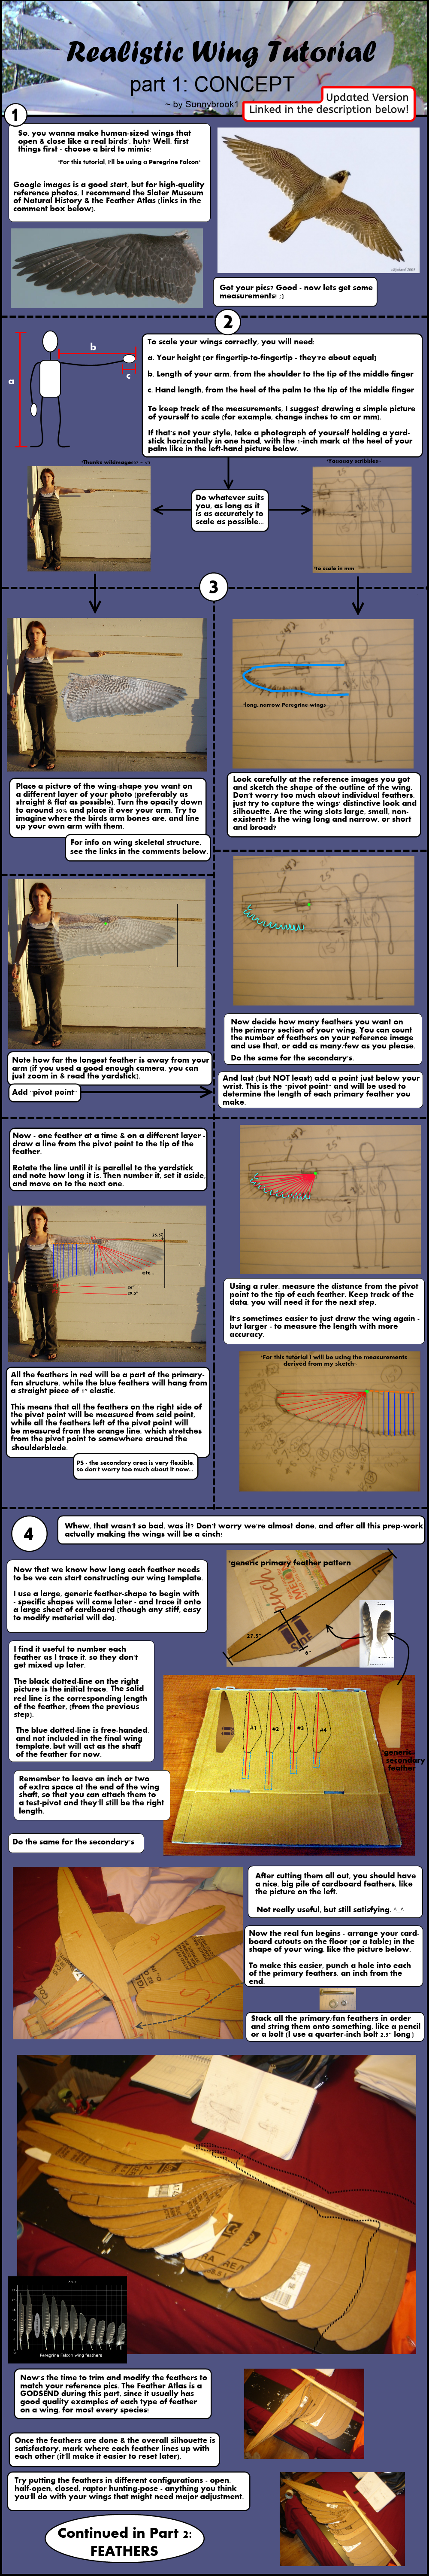 Realistic Wing Tutorial P1 By Sunnybrook1 On Deviantart Wiring Diagram